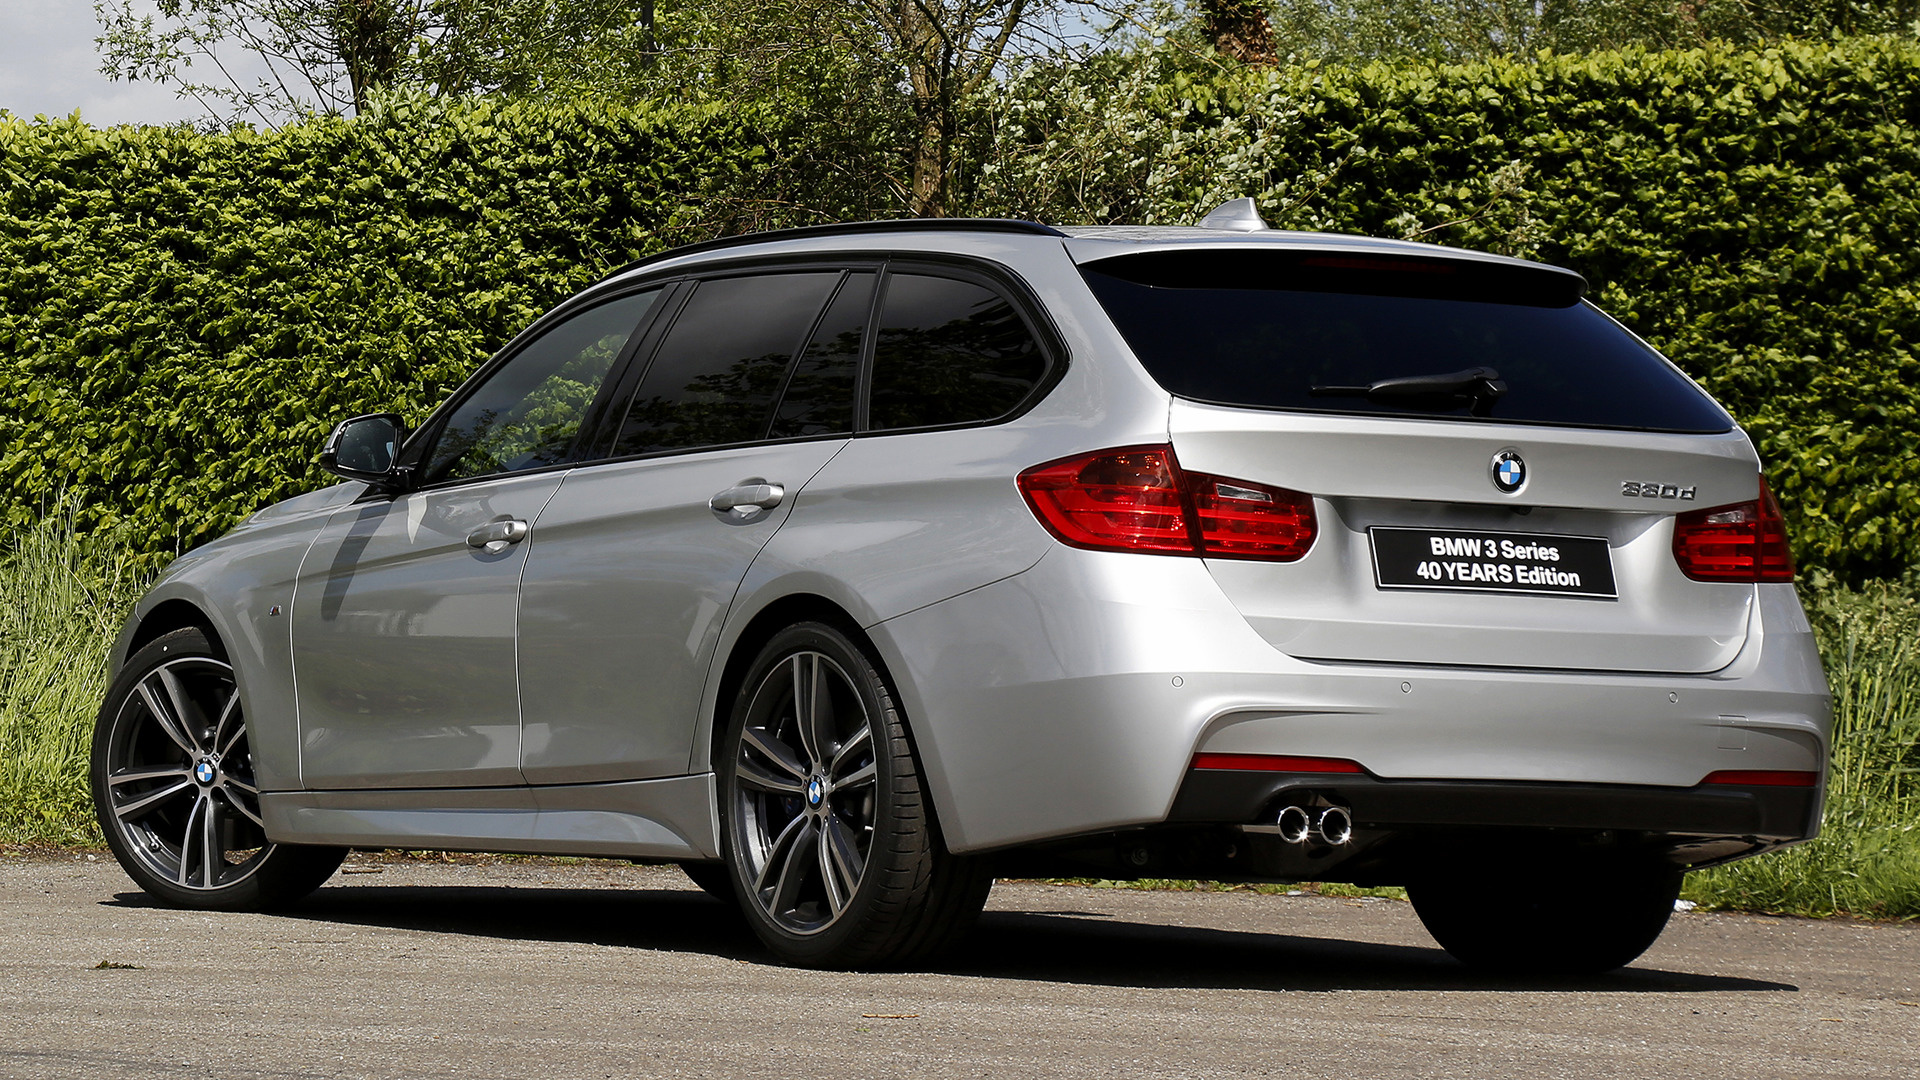 2015 Bmw 3 Series Touring 40 Years Edition Wallpapers